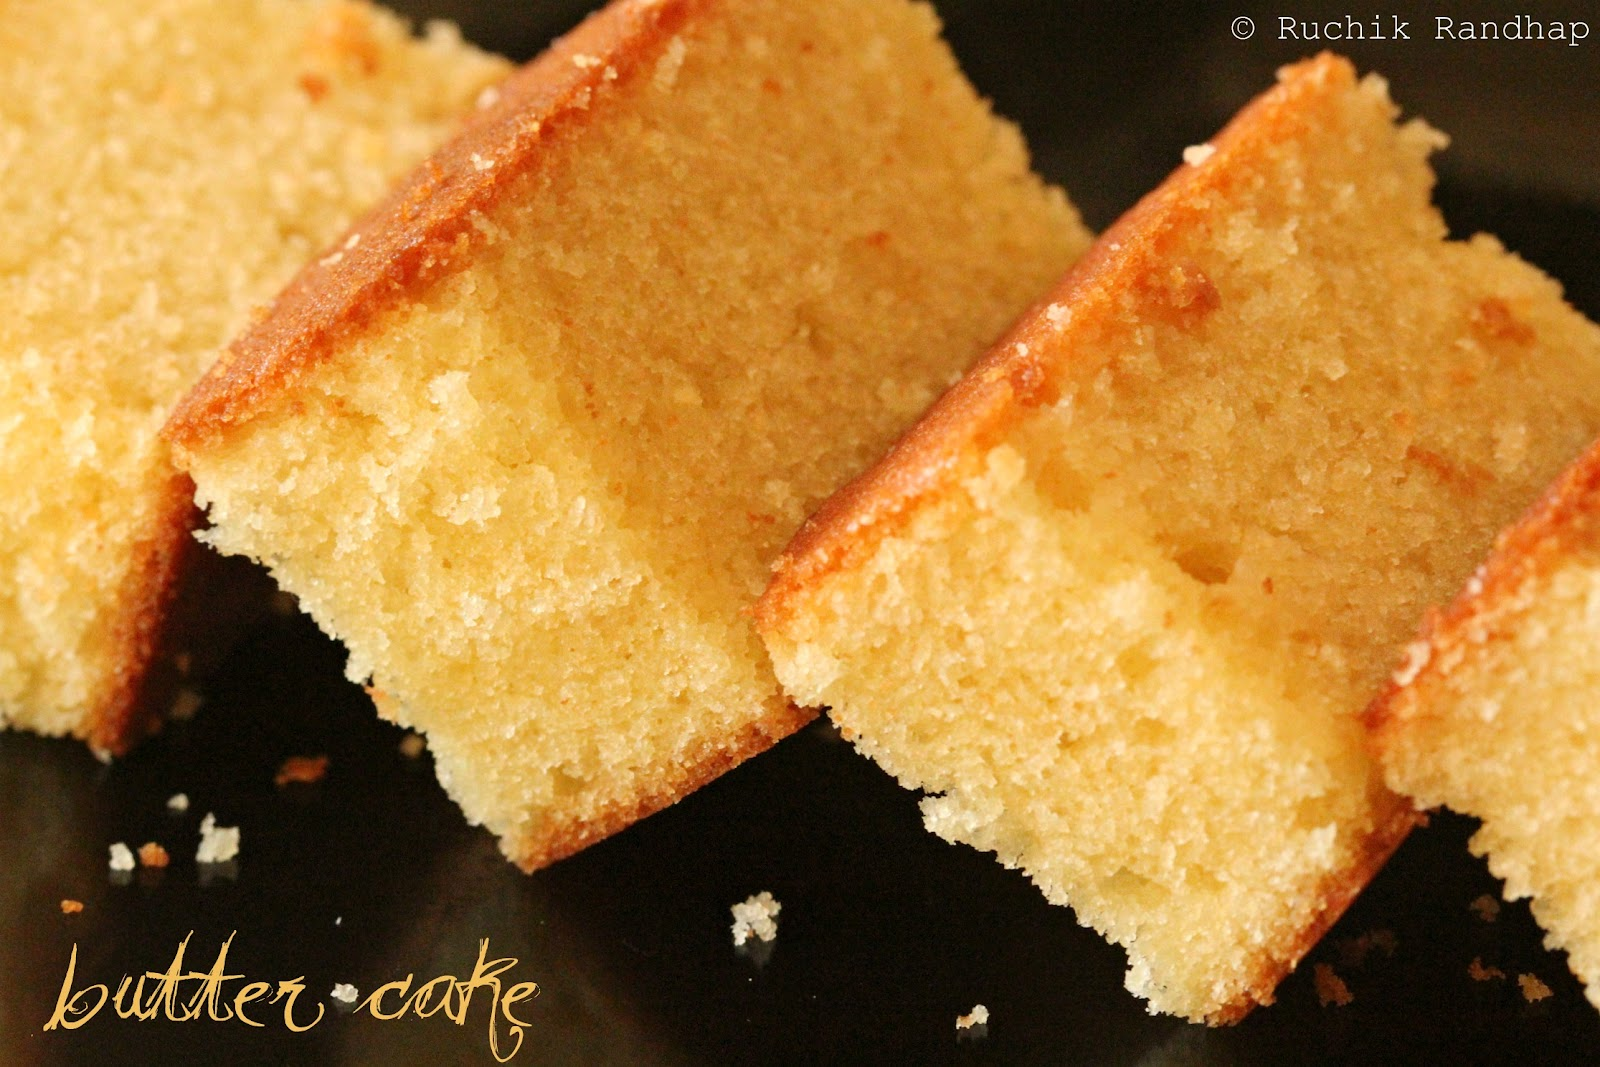 Ruchik Randhap (Delicious Cooking): Butter Cake - Simply Delicious!!